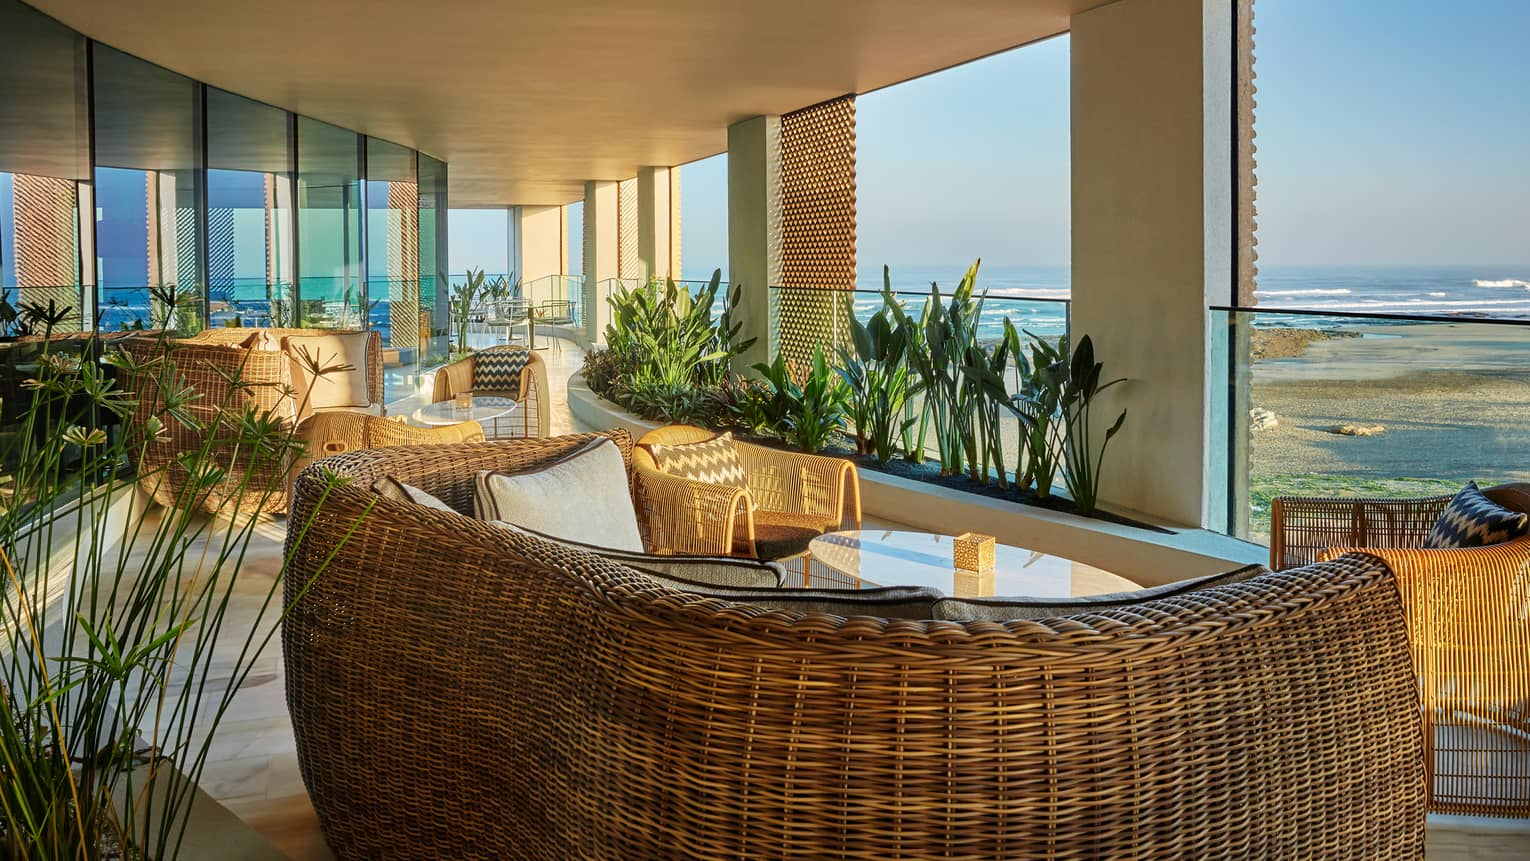 Bleu patio with large wicker sofas, chairs, tropical plants, beach views